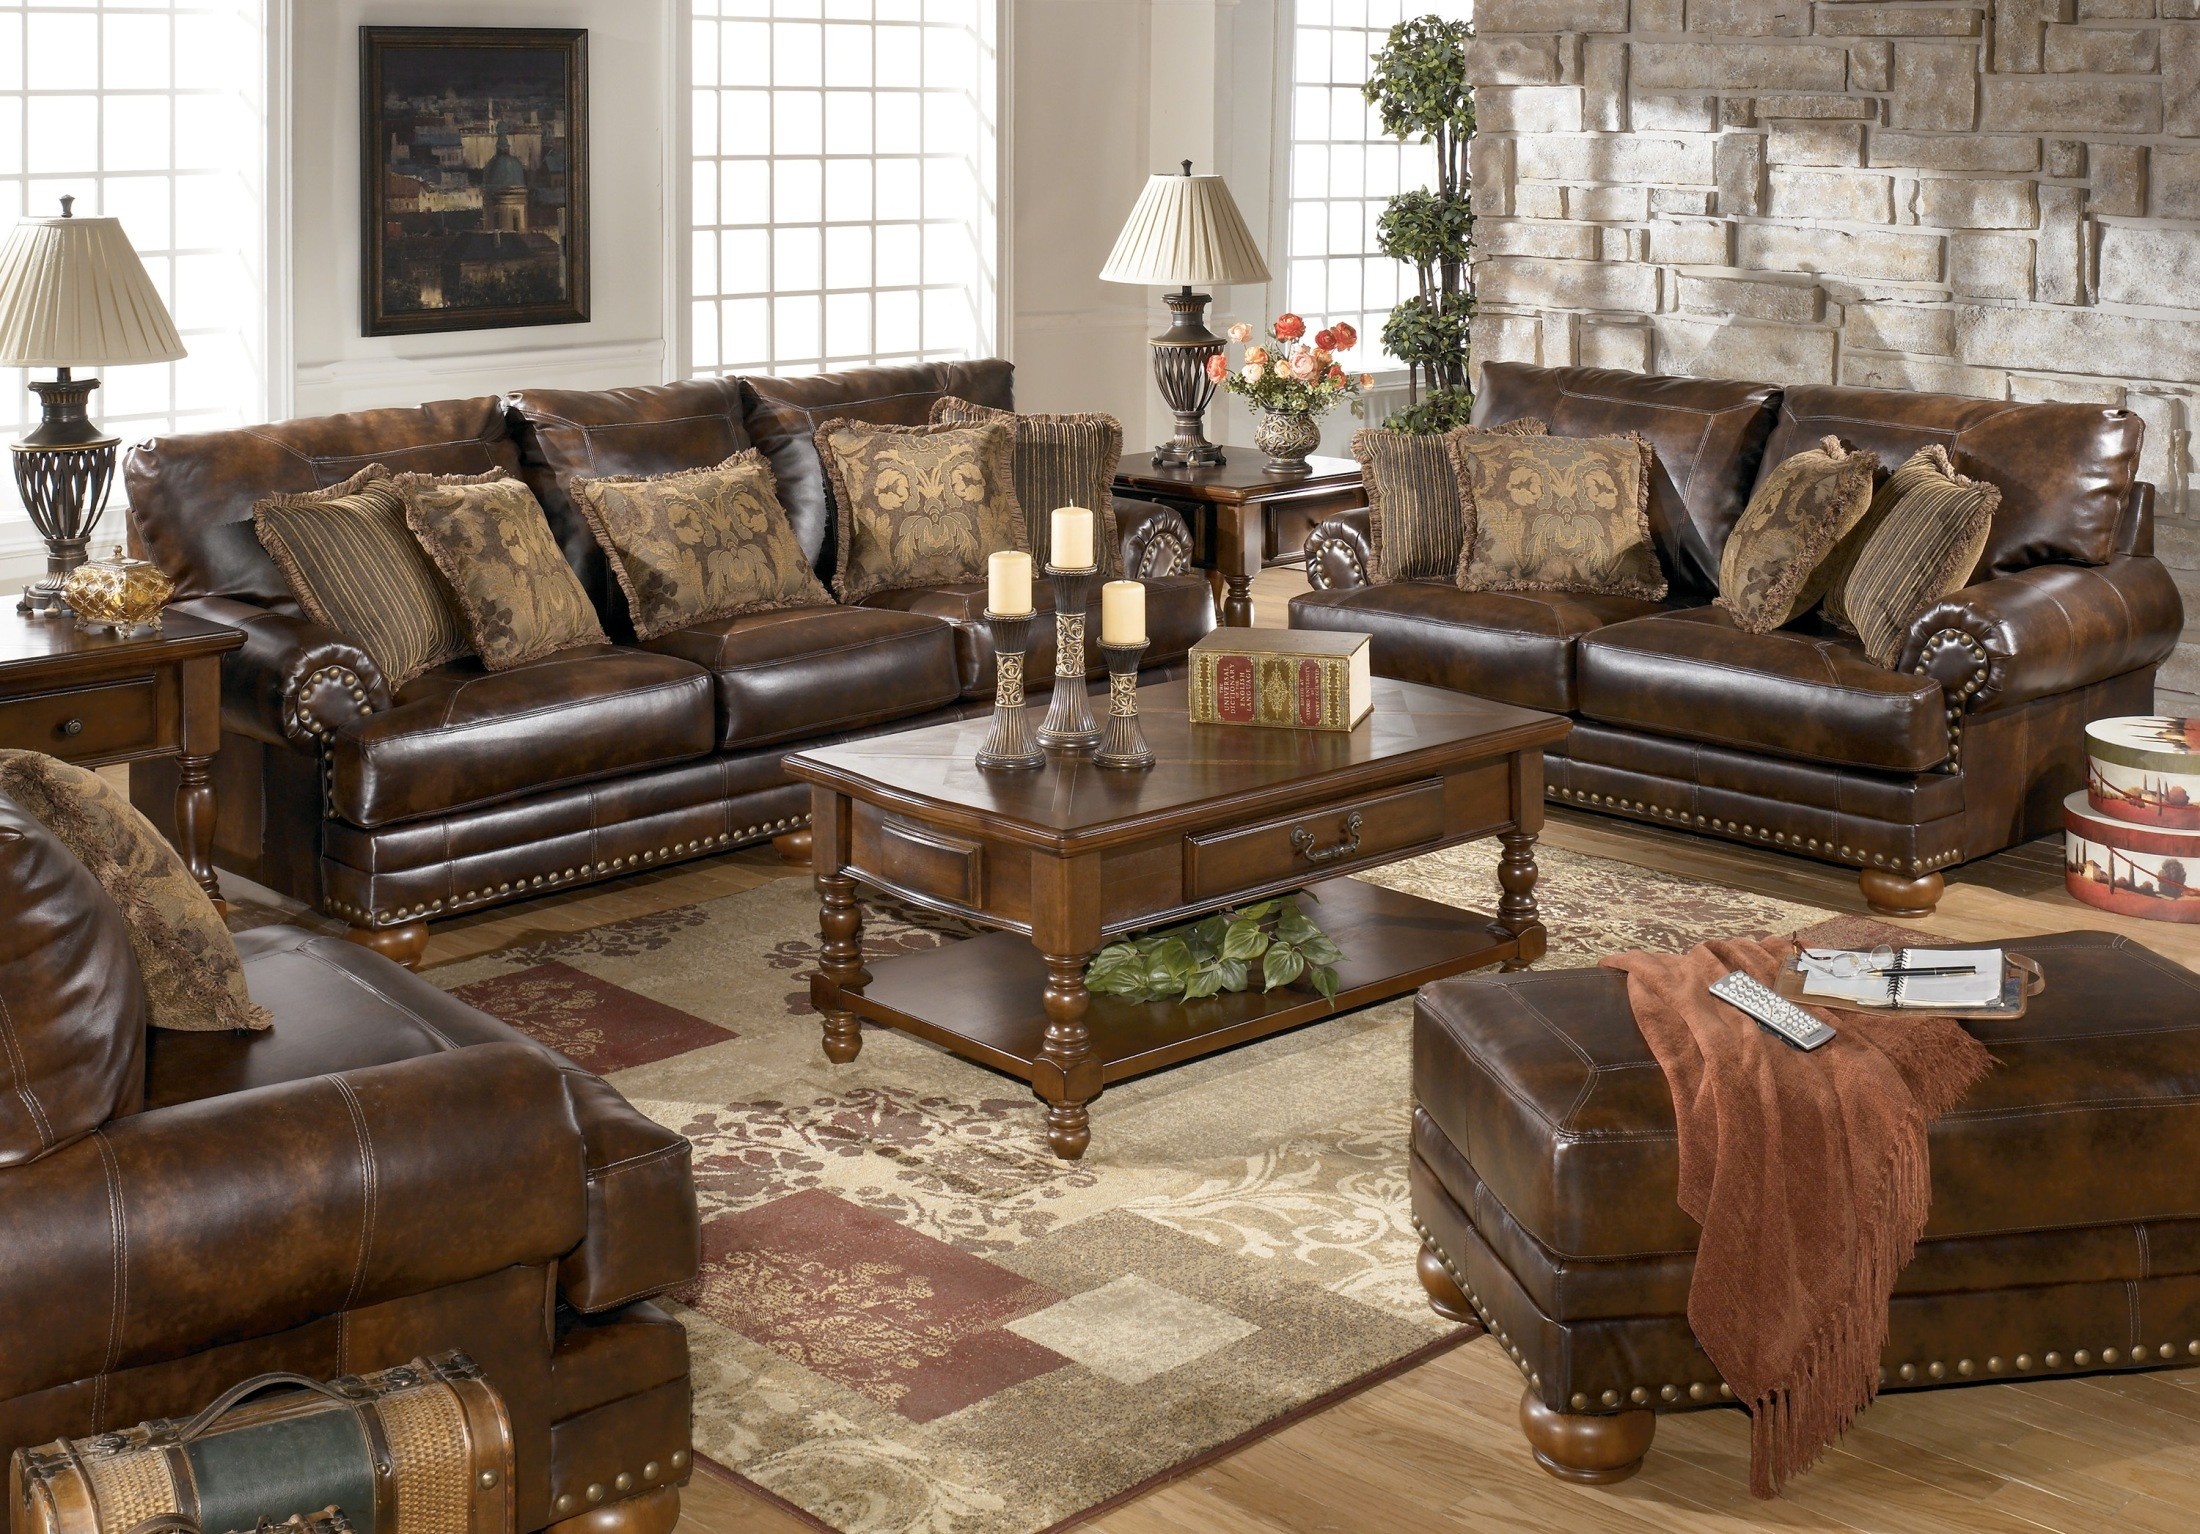 Great Chaling DuraBlend Antique Living Room Set From Signiture Design By Ashley ·  242910 · 586696 · 274853 Part 29